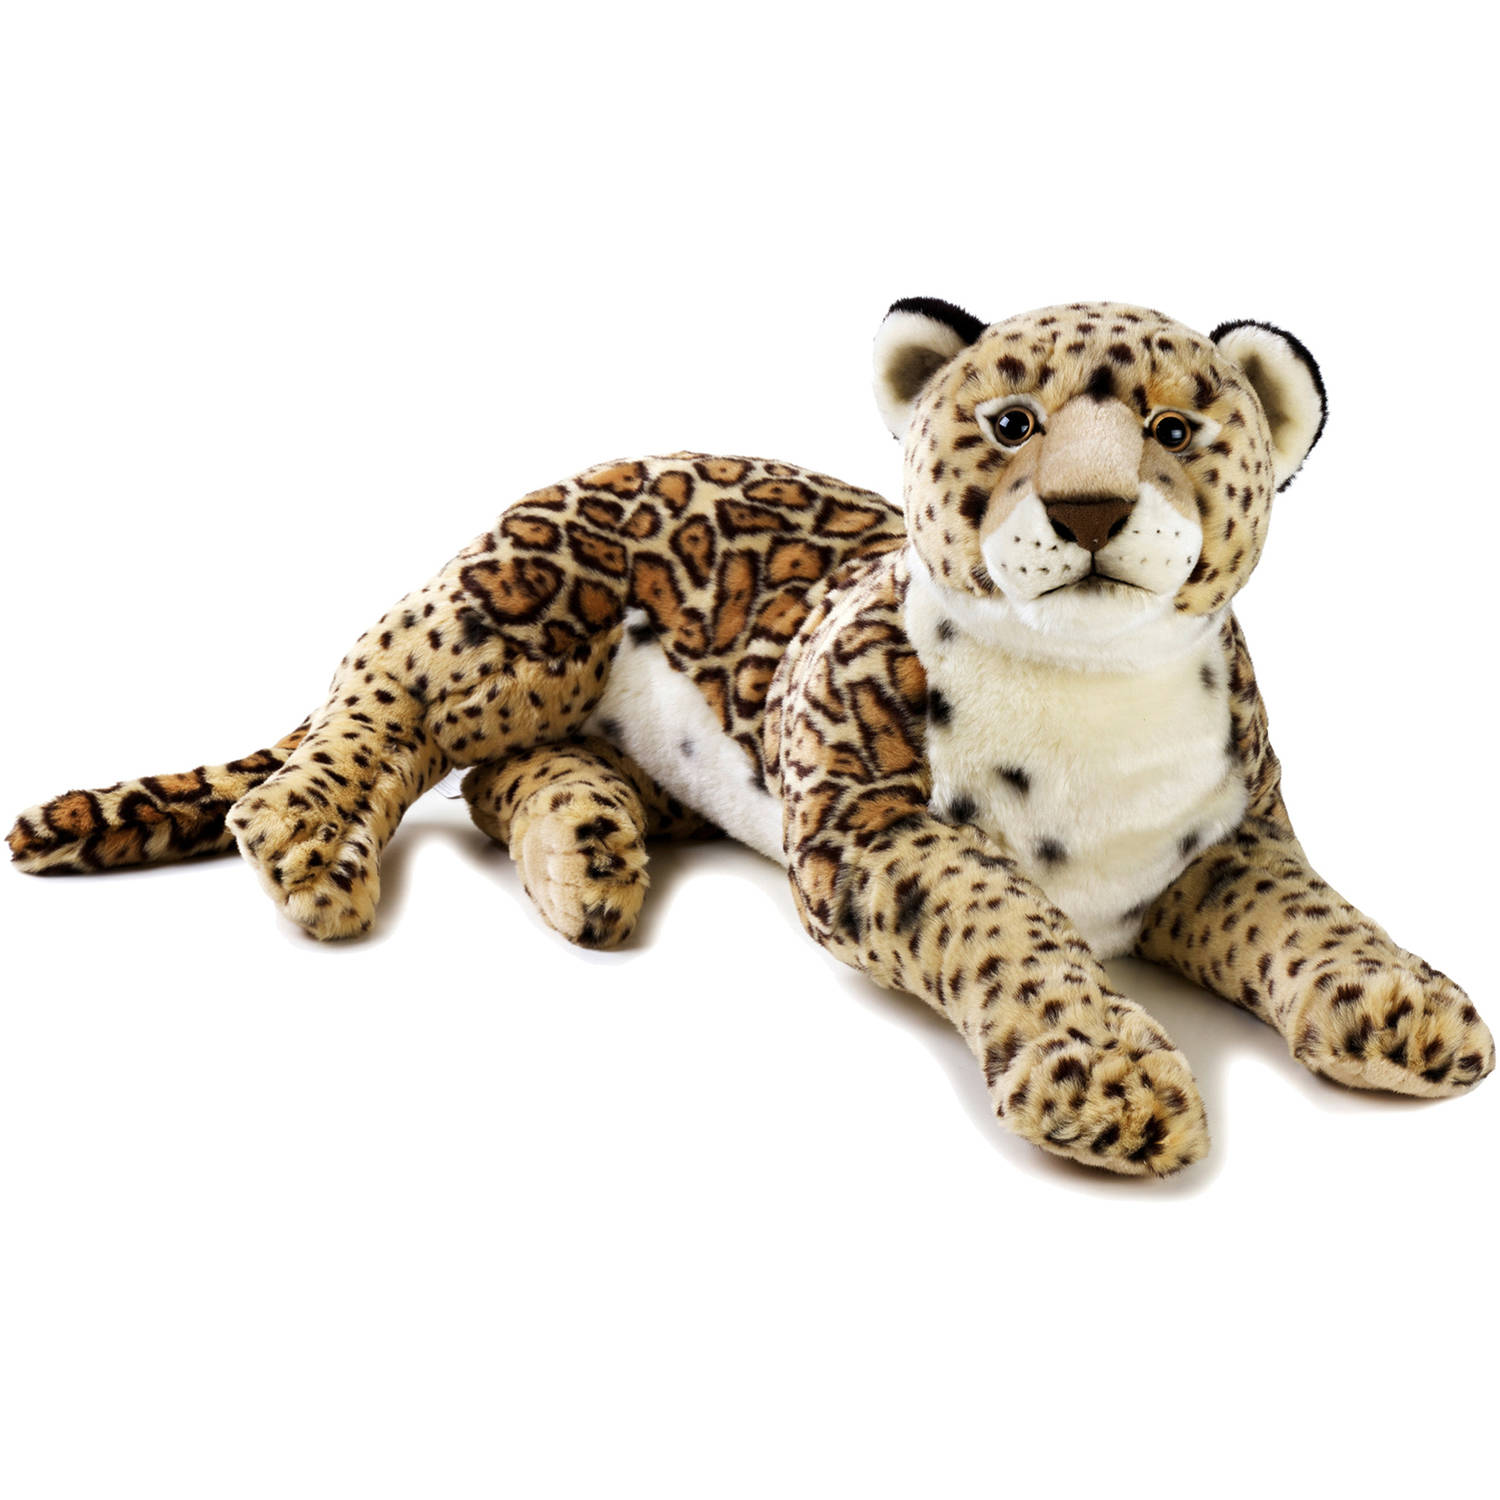 Lelly National Geographic Plush, Jaguar by Venturelli